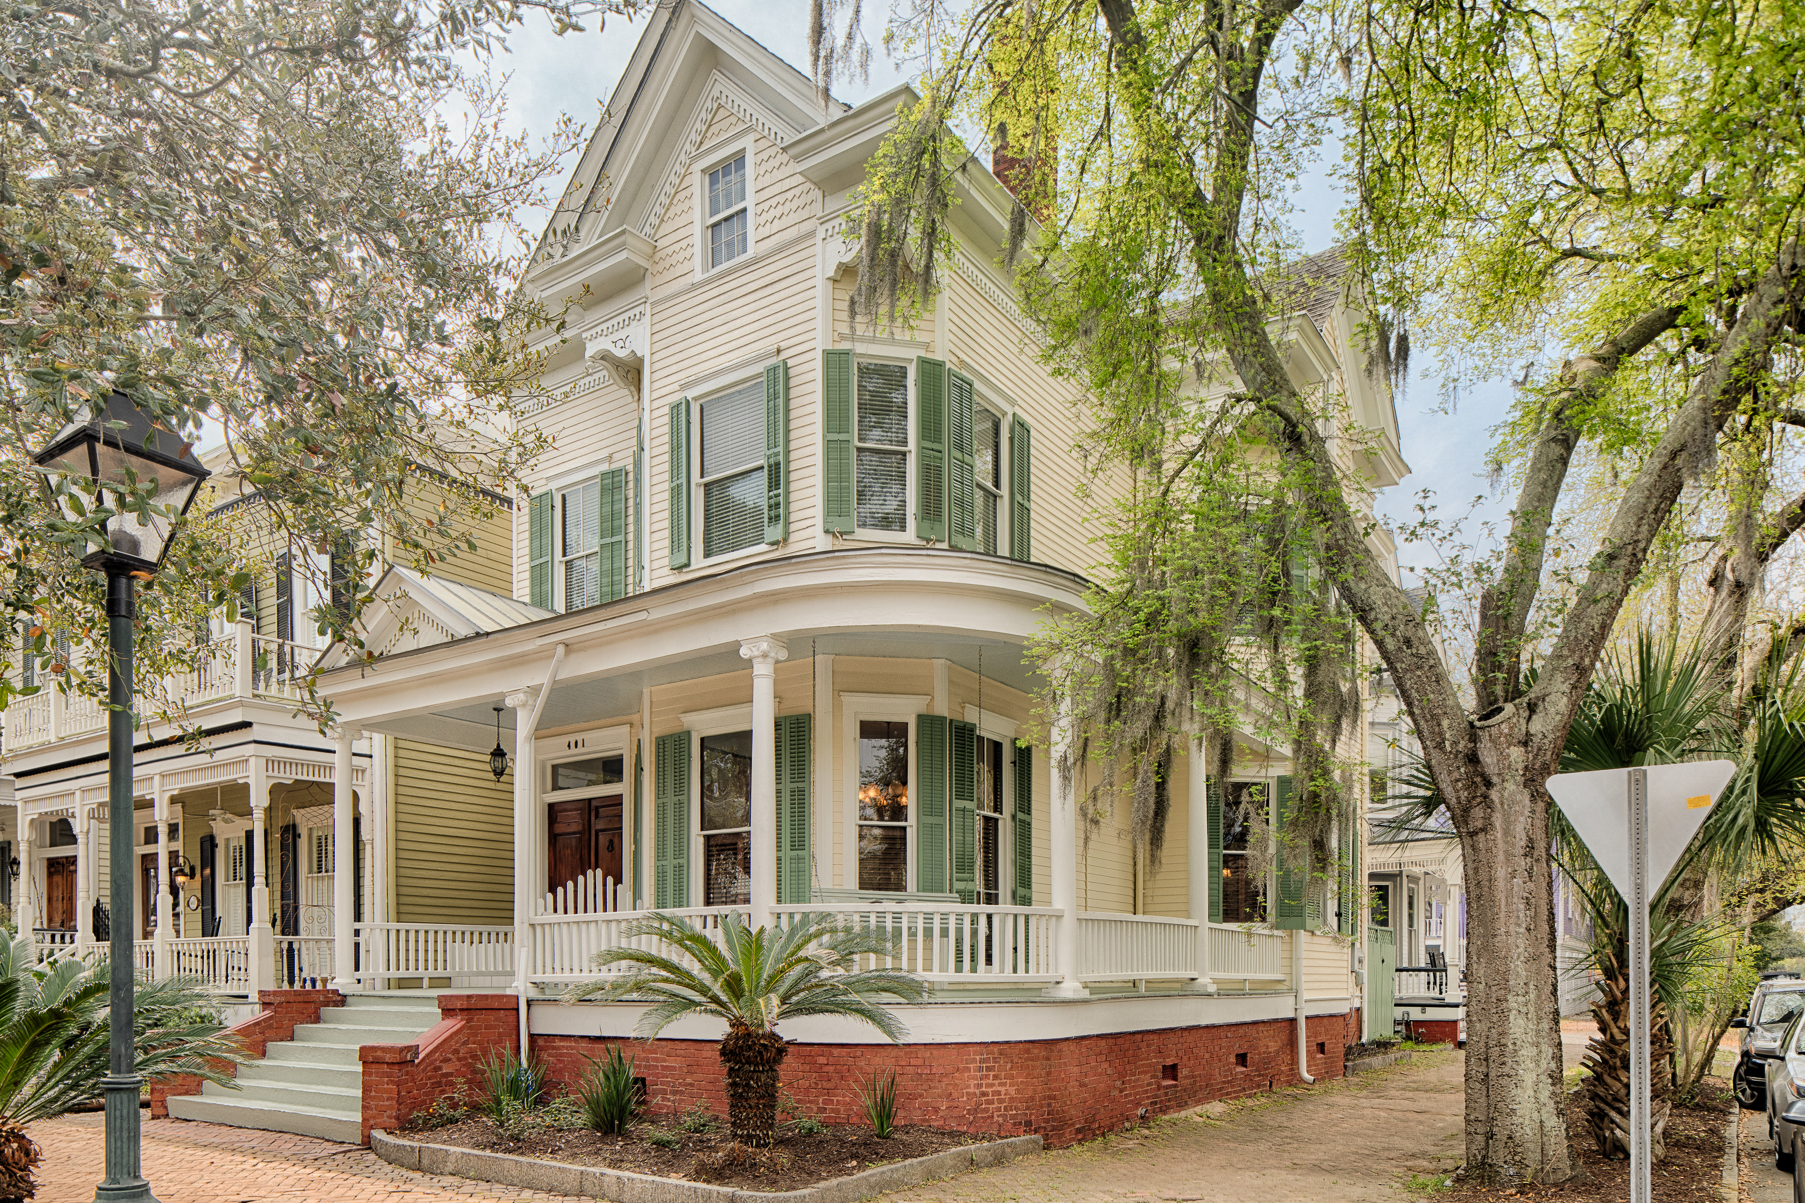 Gordon Street Home for Sale In Savannah, GA